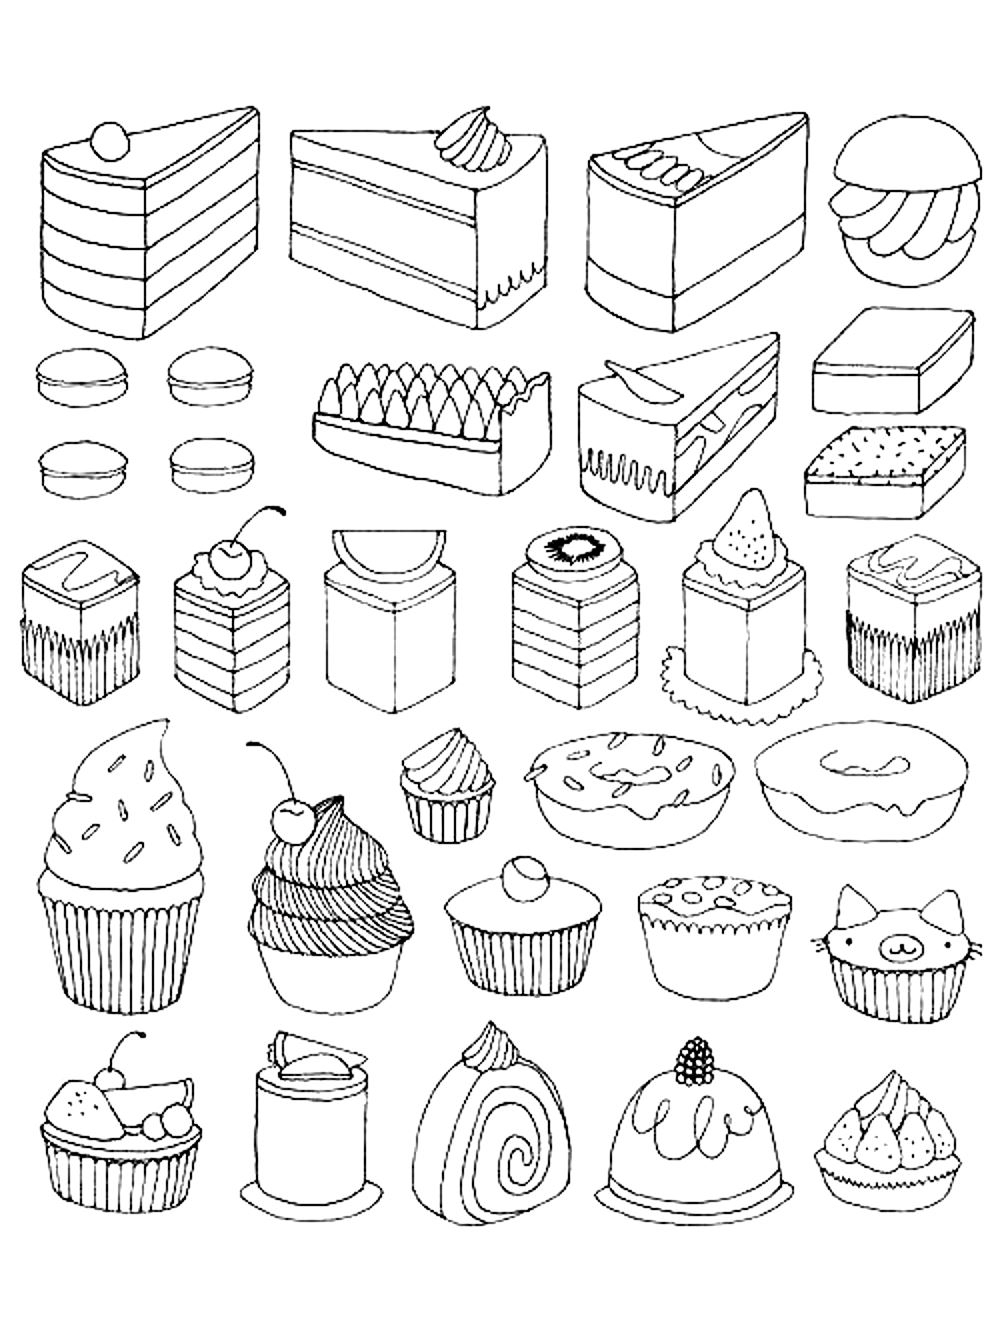 Cupcakes And Little Cakes - Cupcakes Adult Coloring Pages tout Dessin Gateaux